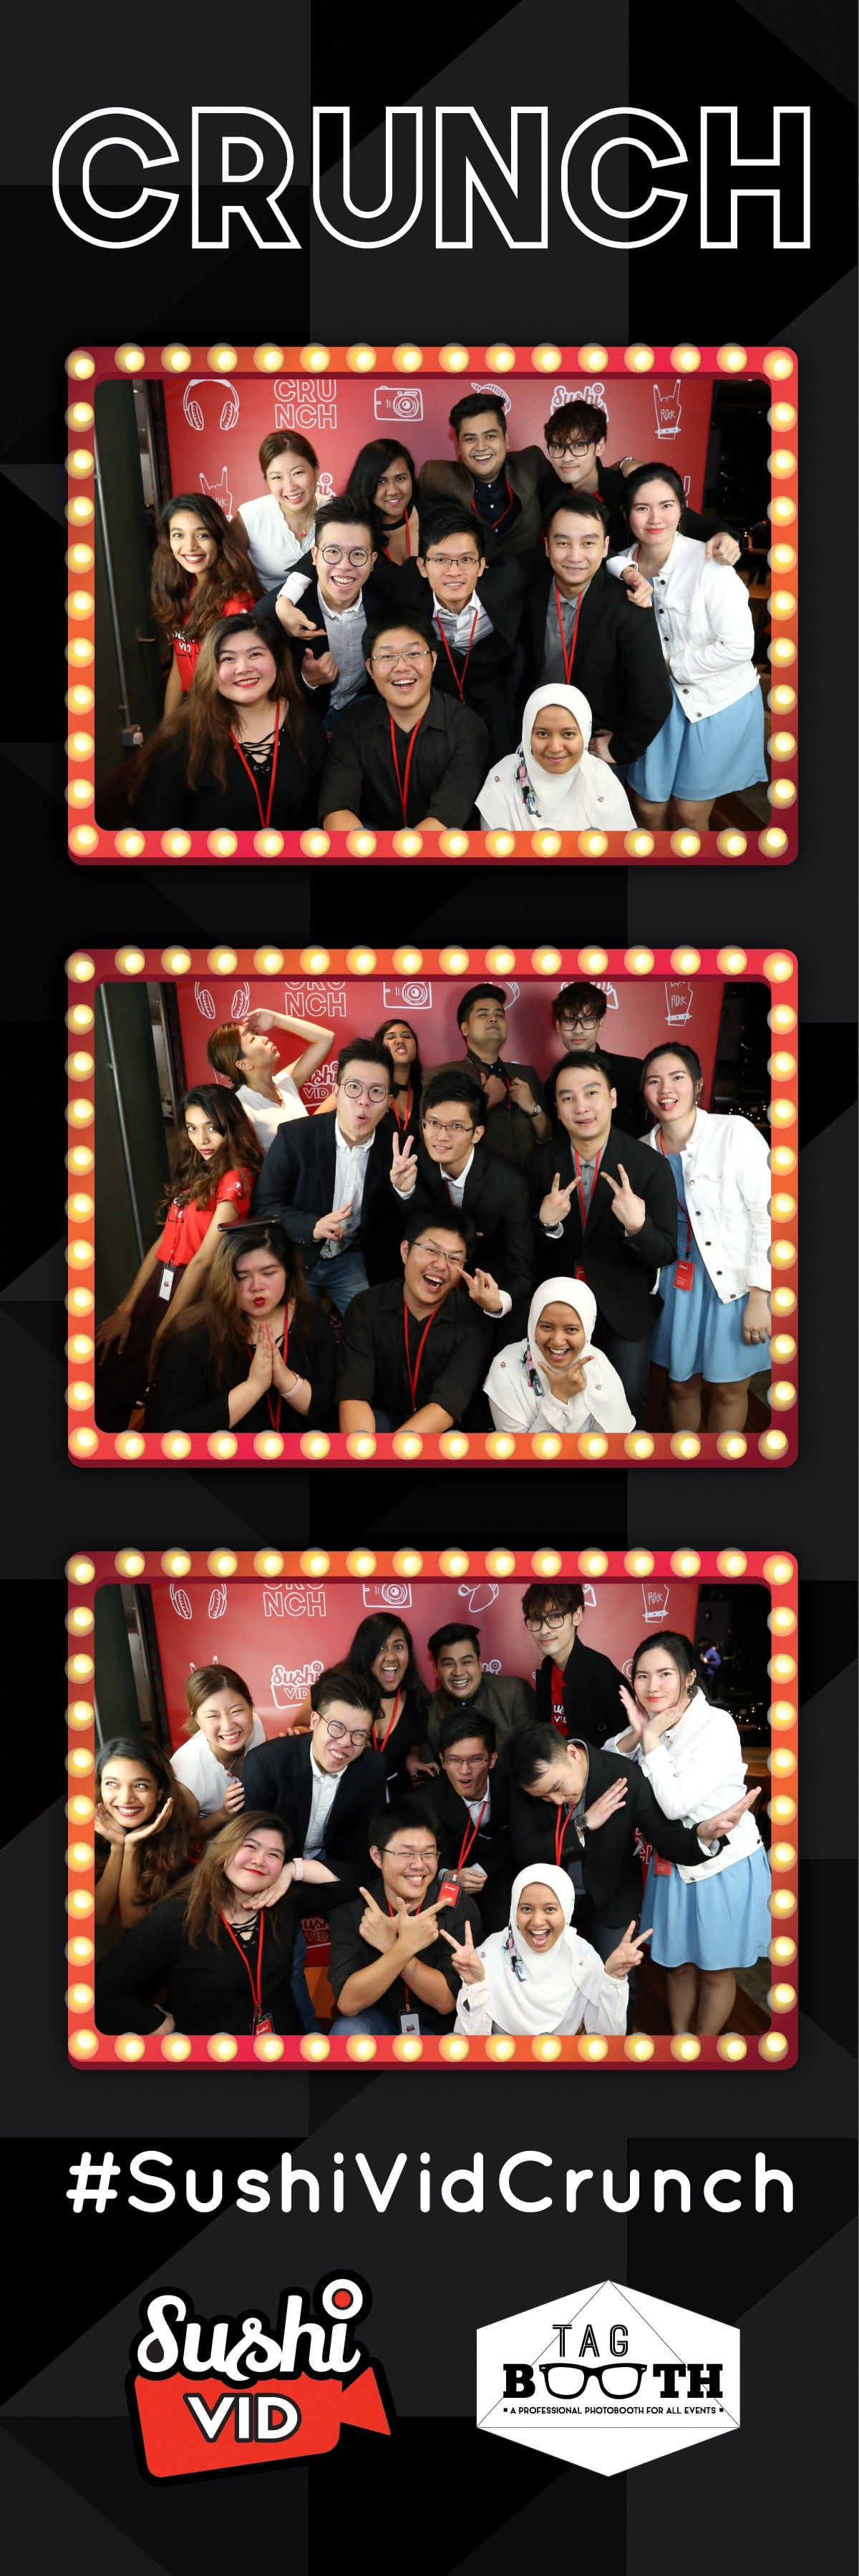 Sushivid+crunch+tagbooth1+50